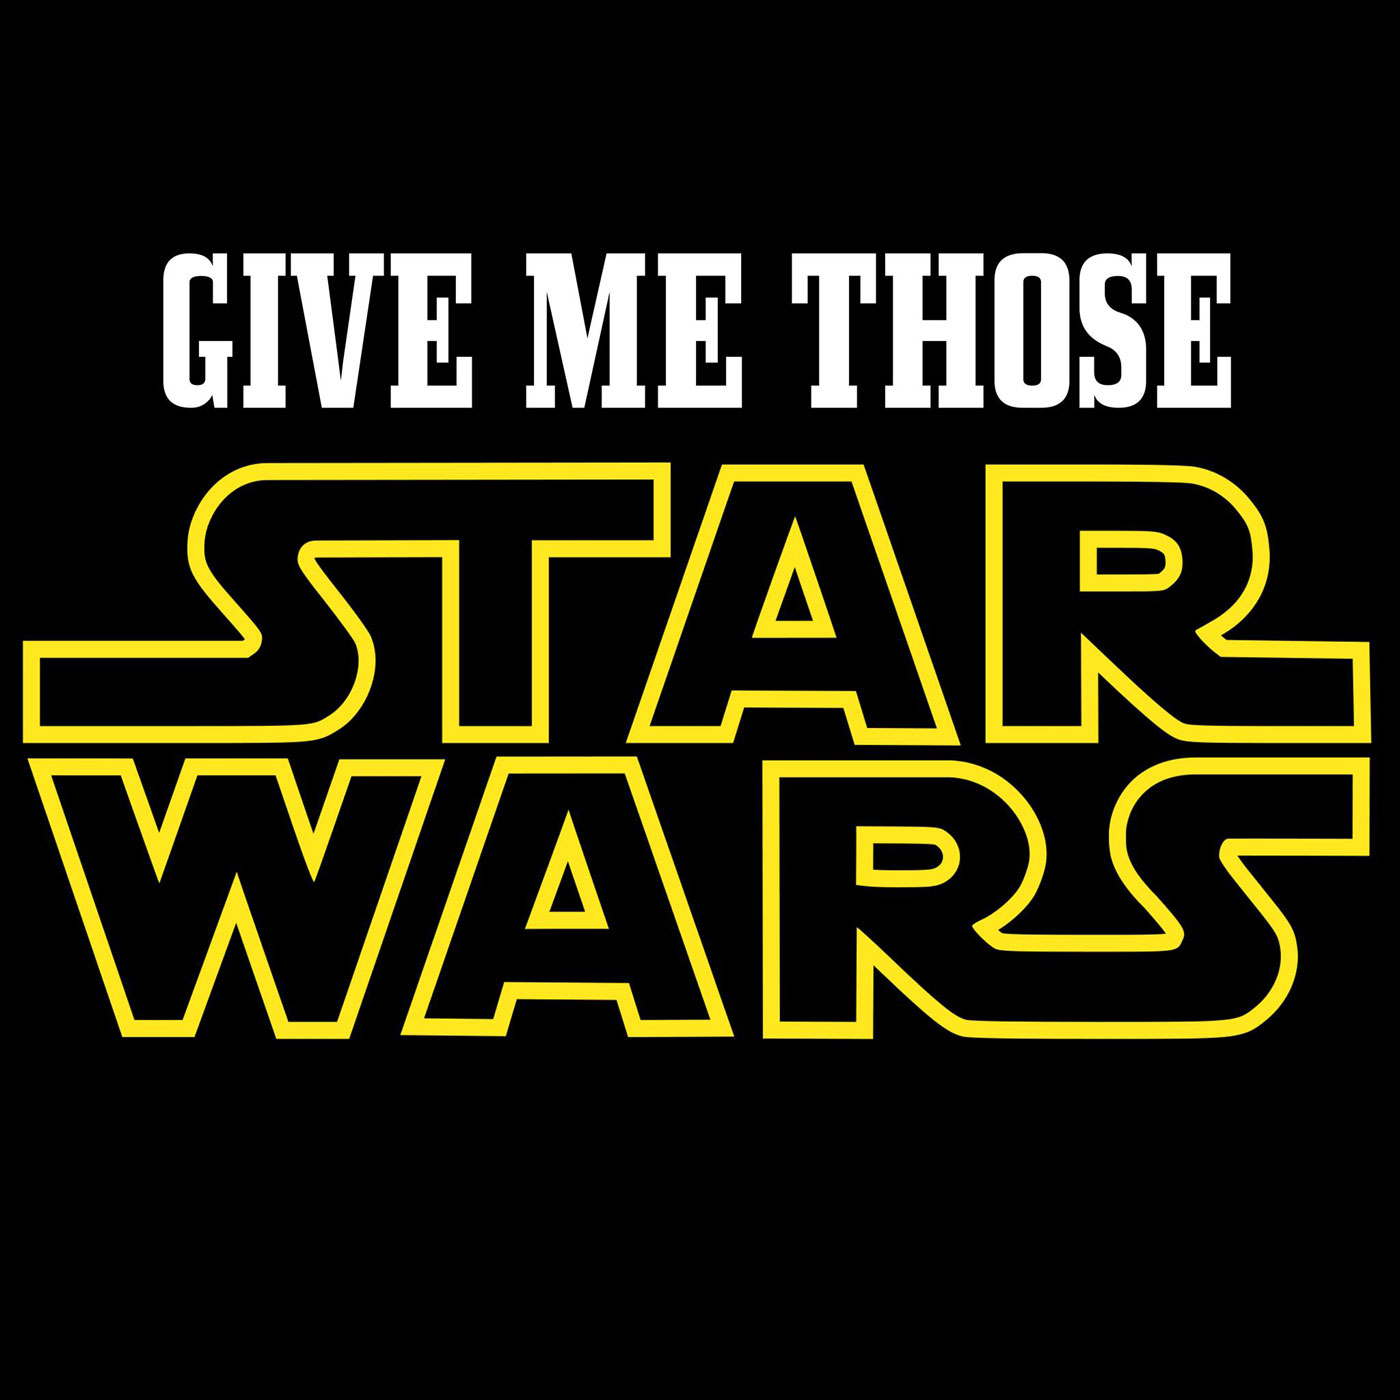 <![CDATA[Give Me Those Star Wars]]>